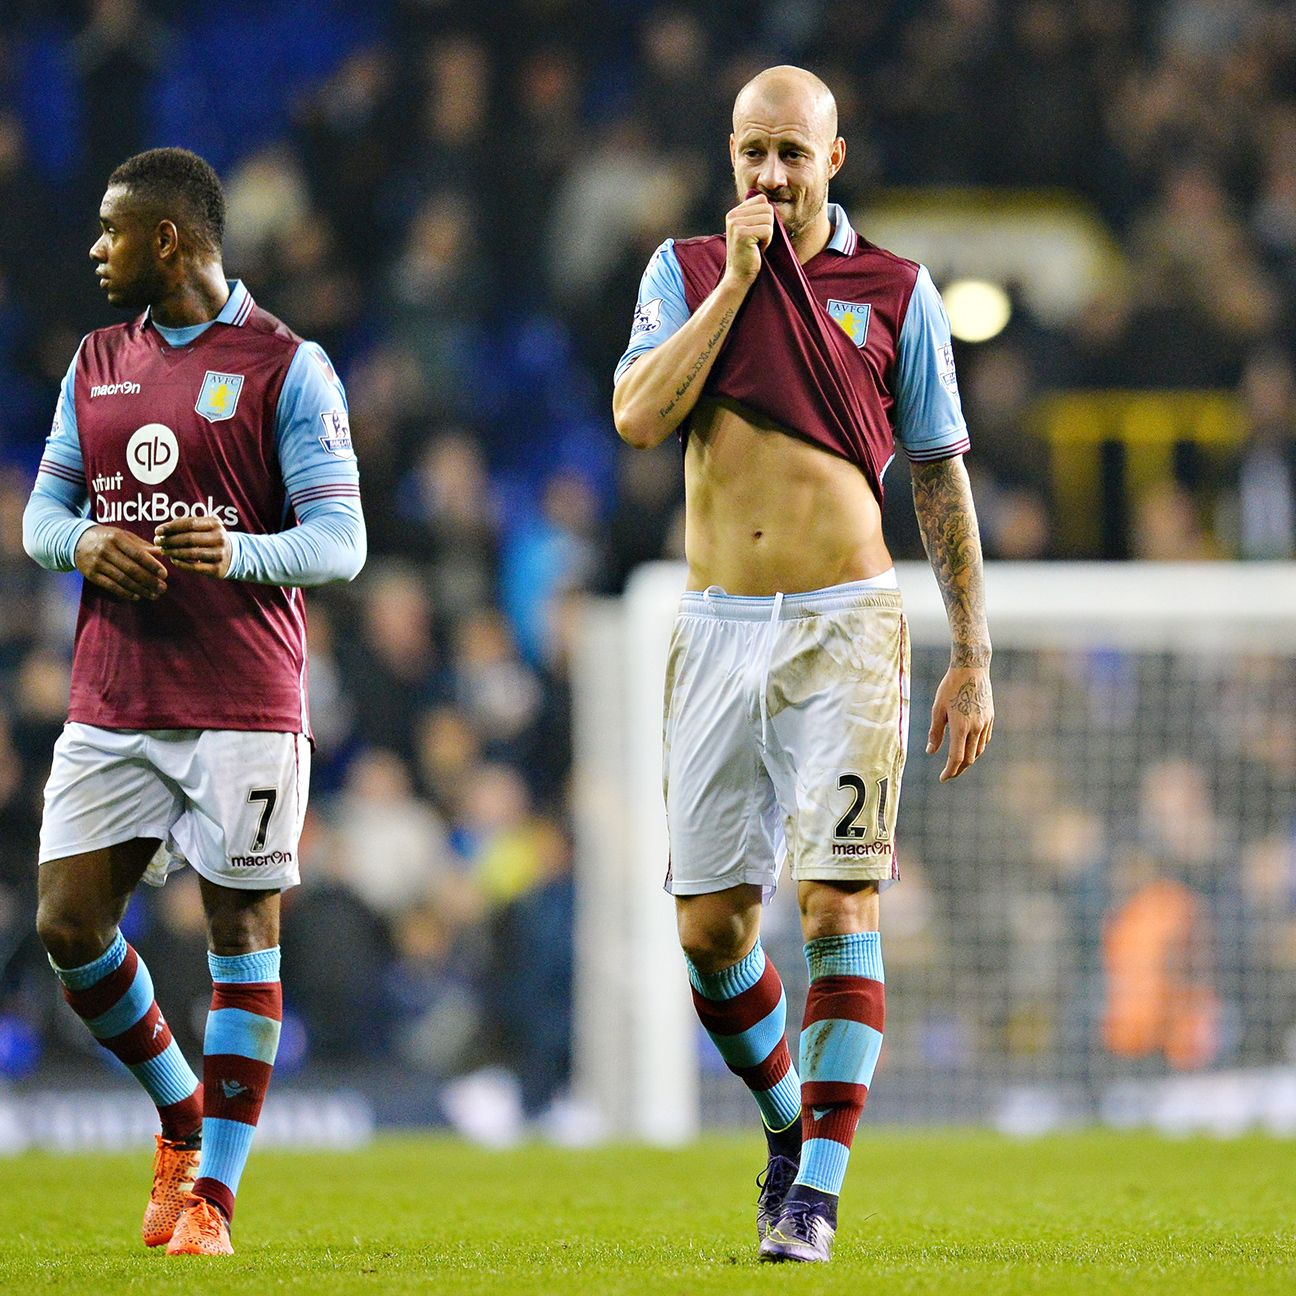 After Monday's loss to Tottenham, Aston Villa have just four points through 11 matches.